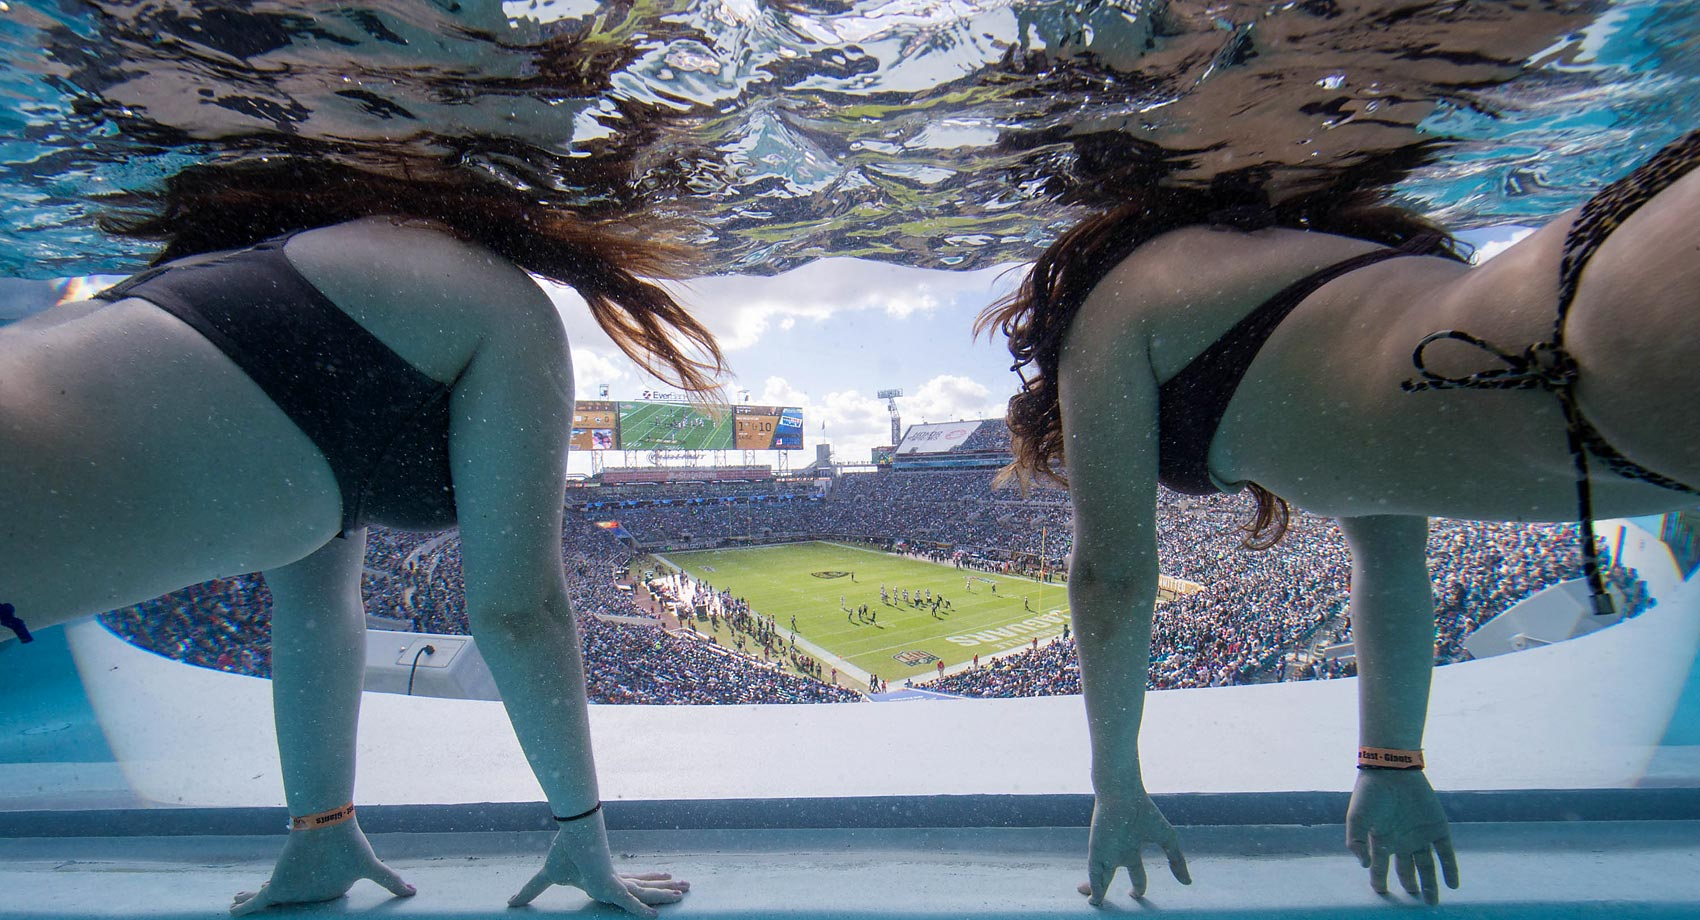 Fans watch the New York Giants vs. Jacksonville Jaguars game from underwater in the northeast pool on the Clevelander Deck at EverBank Field.